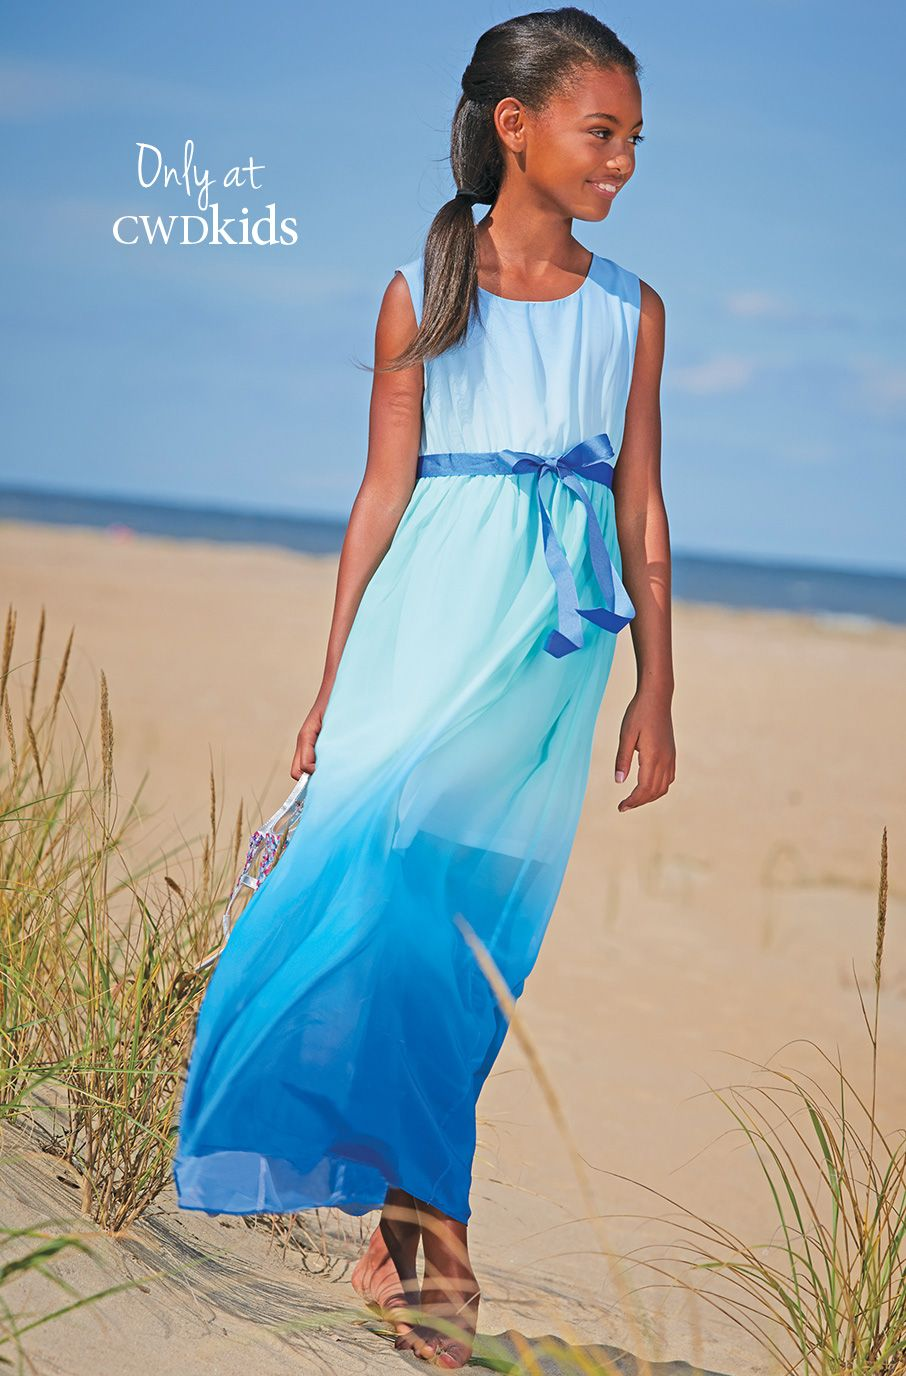 From CWDkids: Ombre Maxi Dress | Sweet & Sassy Tween Girly Things ...